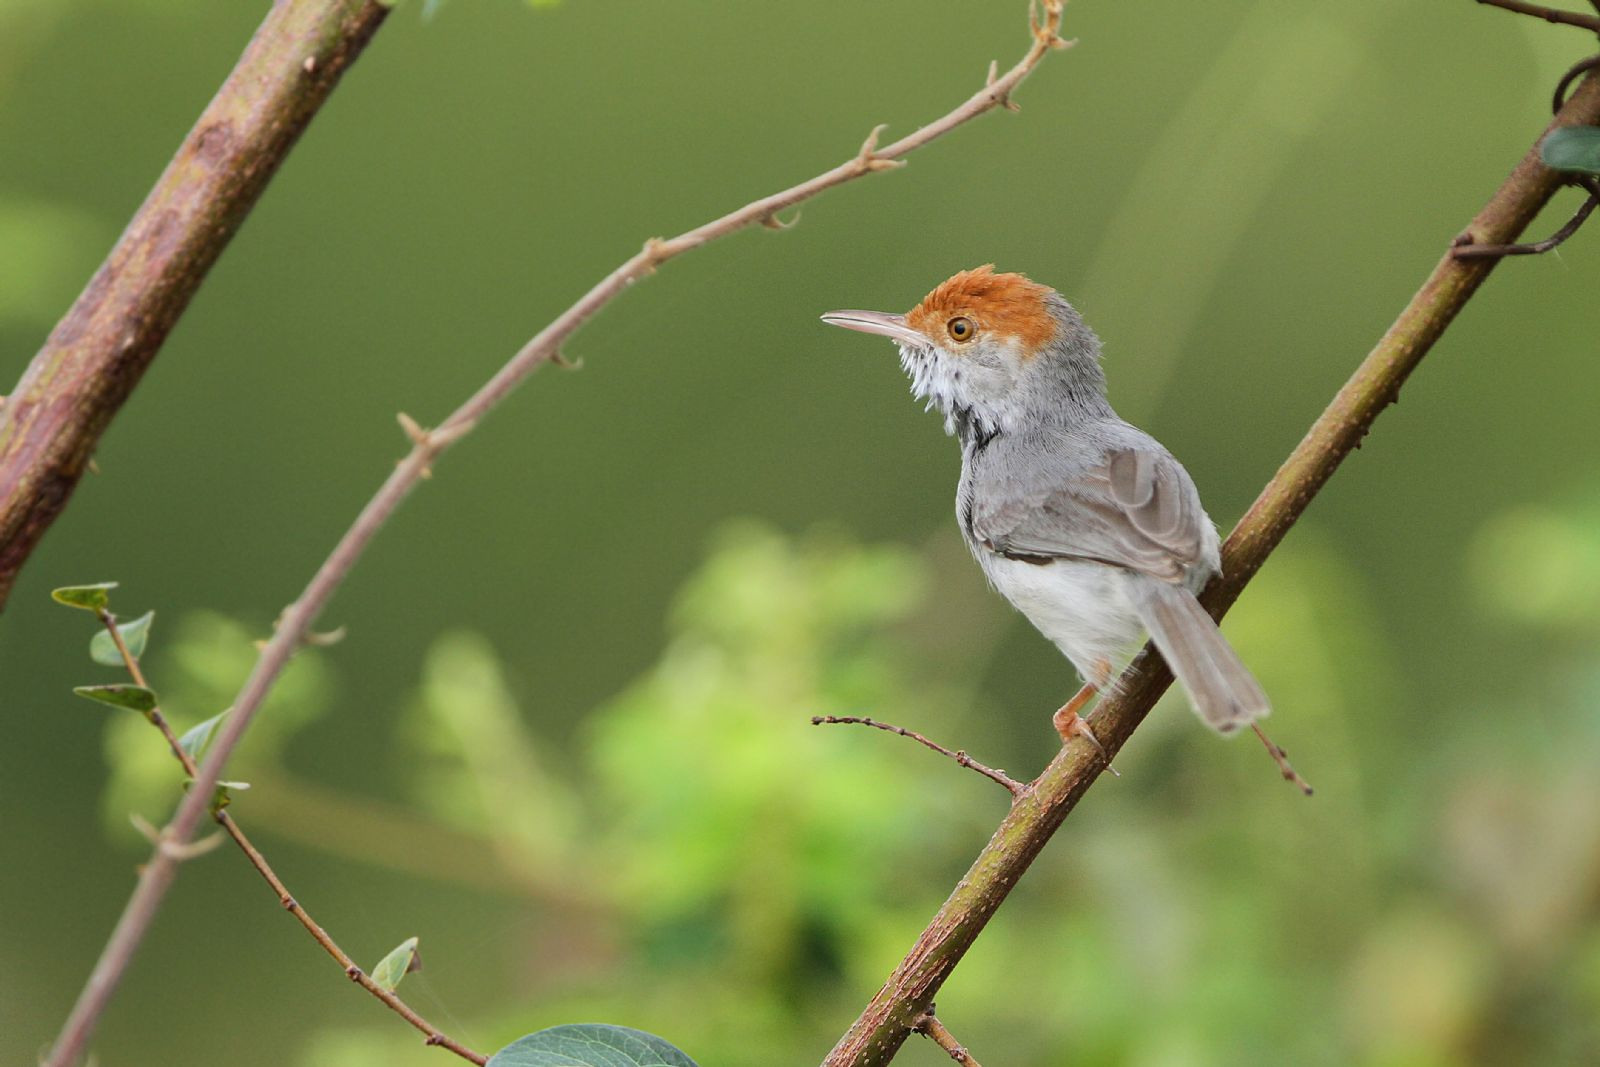 A new species of featureless little bird, the Cambodian Tailorbird. Photo: James Eaton.